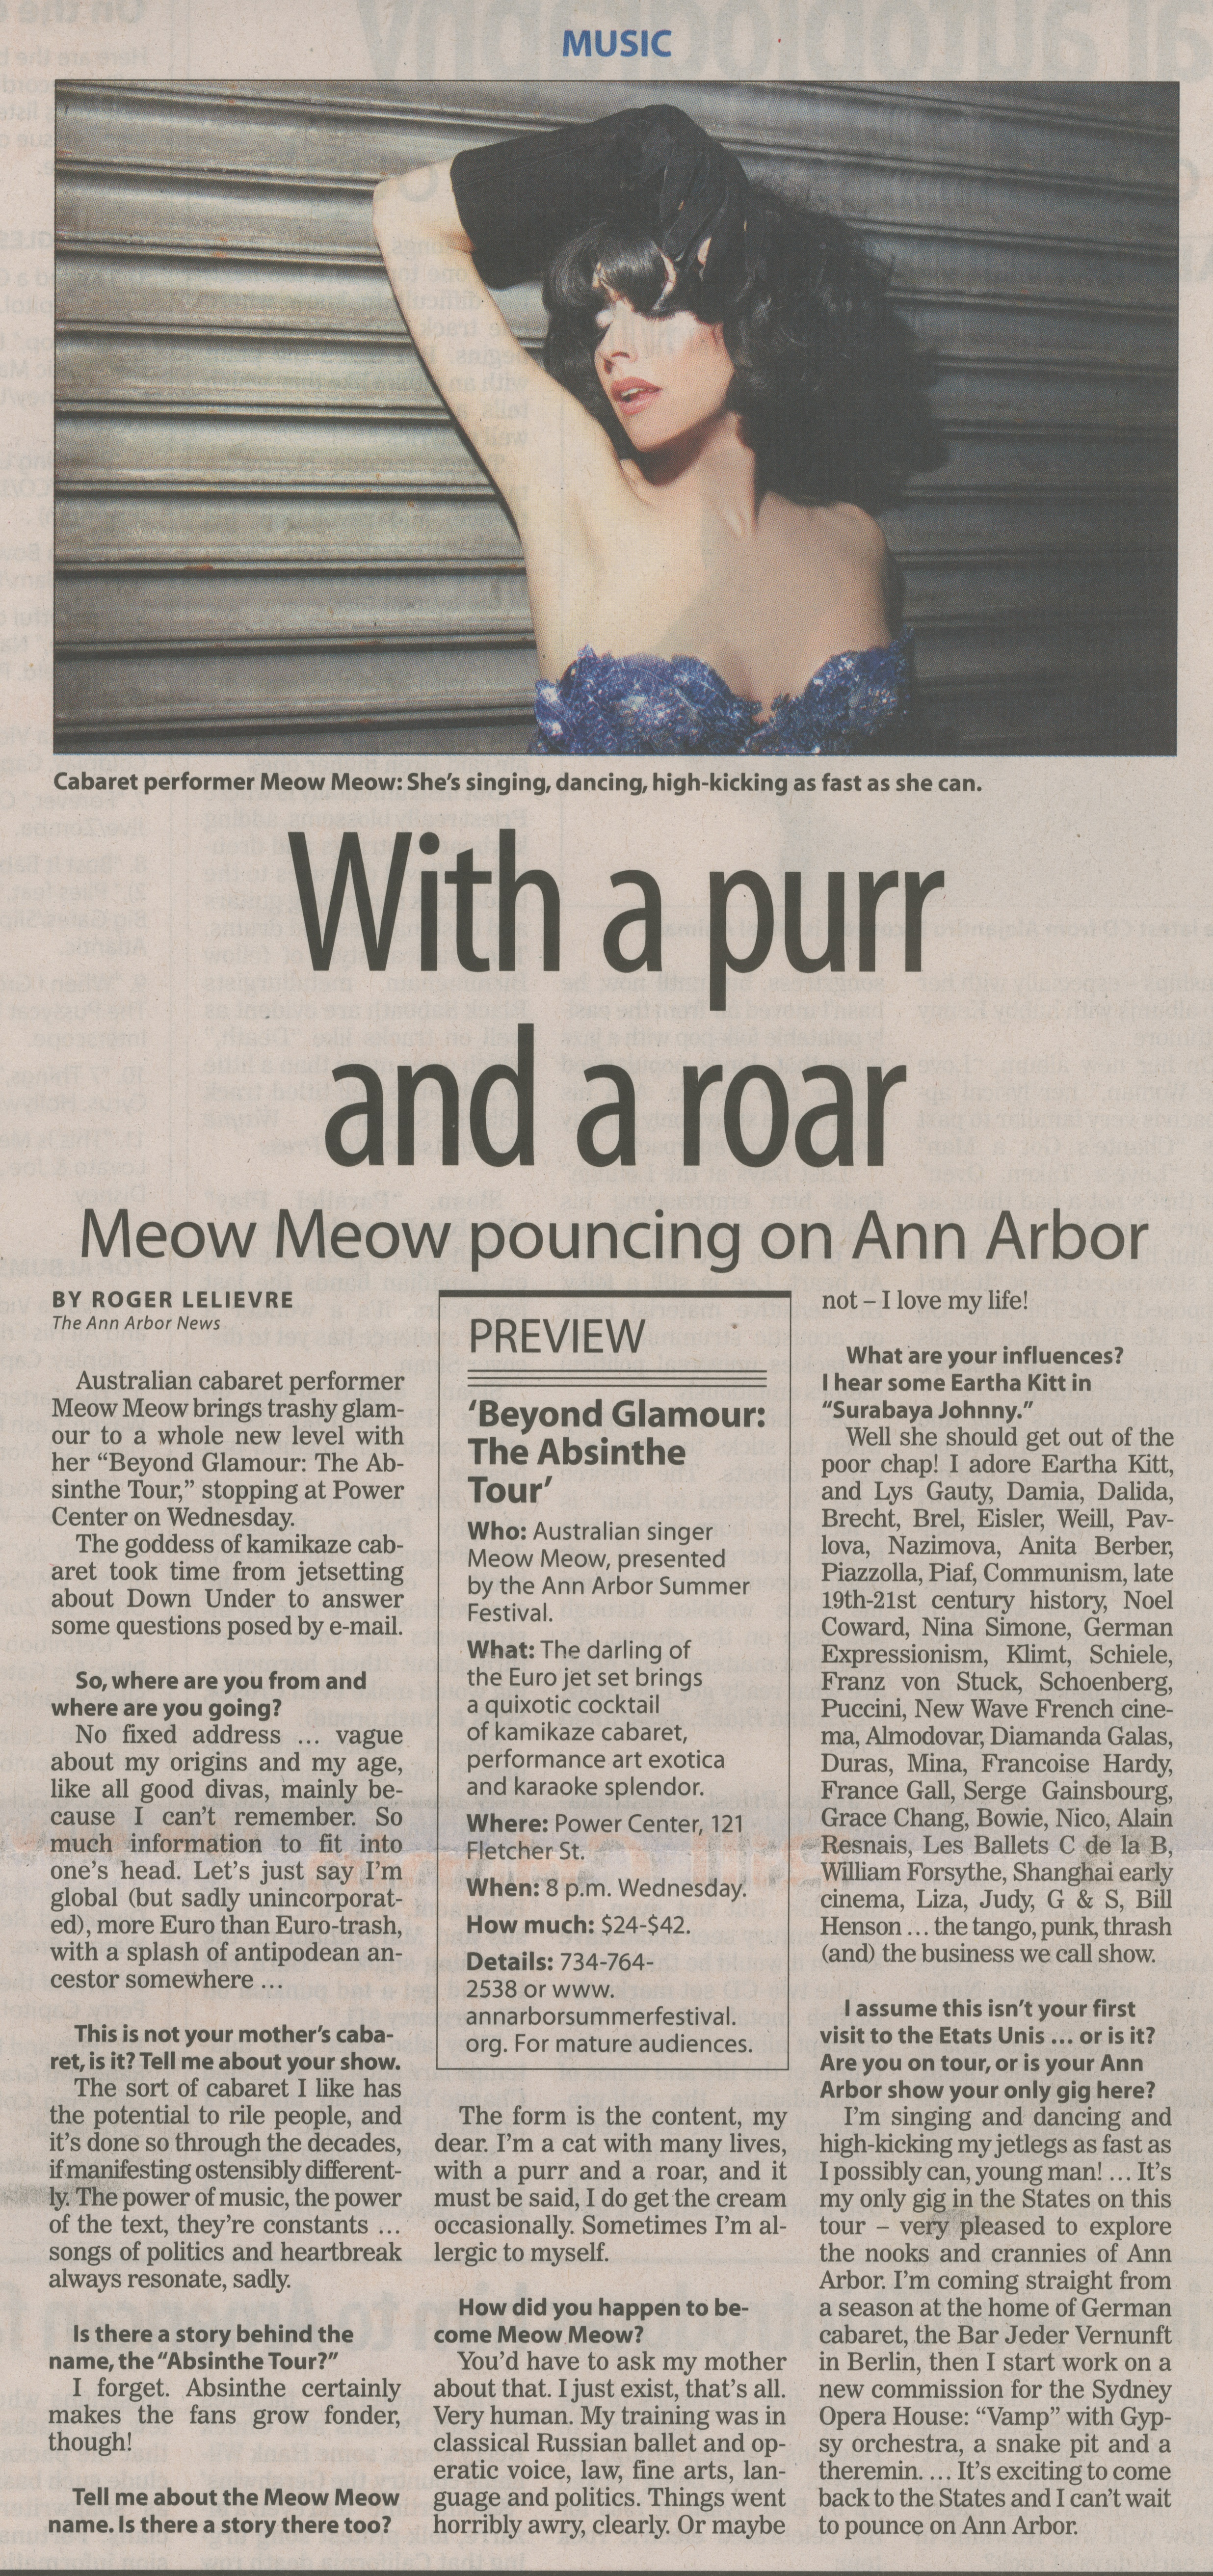 With a purr and a roar: Meow Meow pouncing on Ann Arbor image